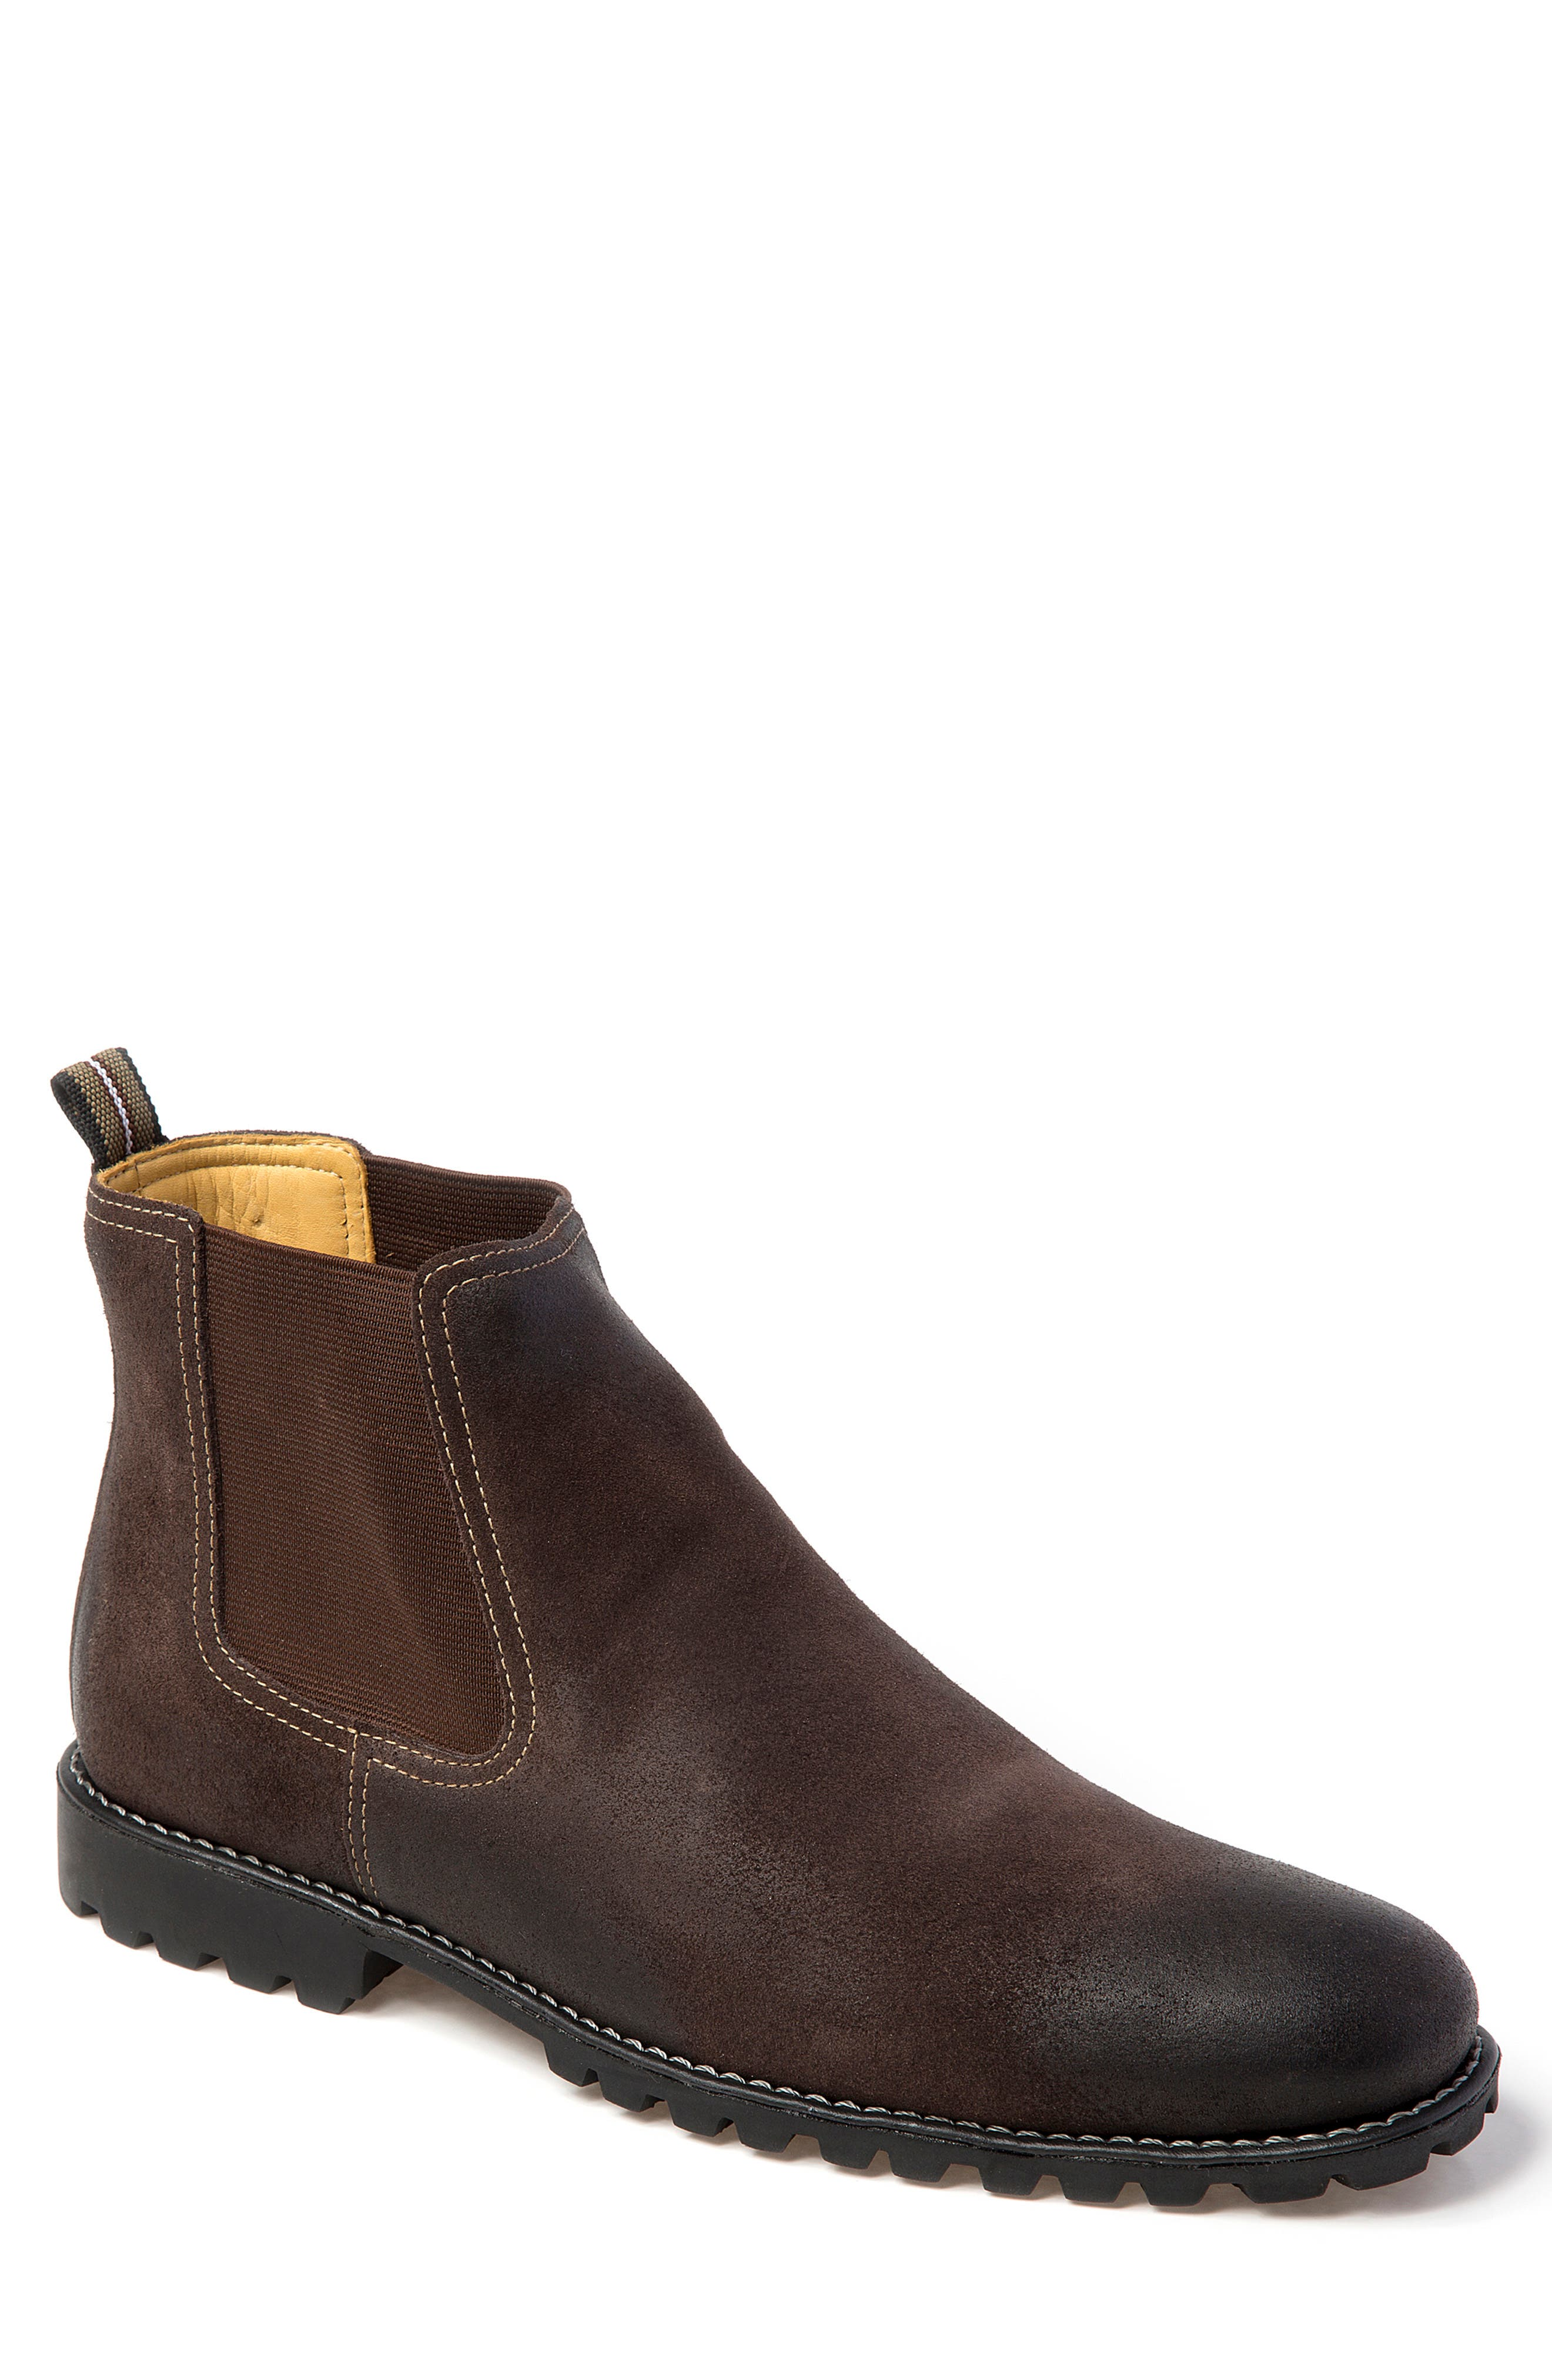 Sandro Moscoloni Cyrus Lugged Chelsea Boot - Brown